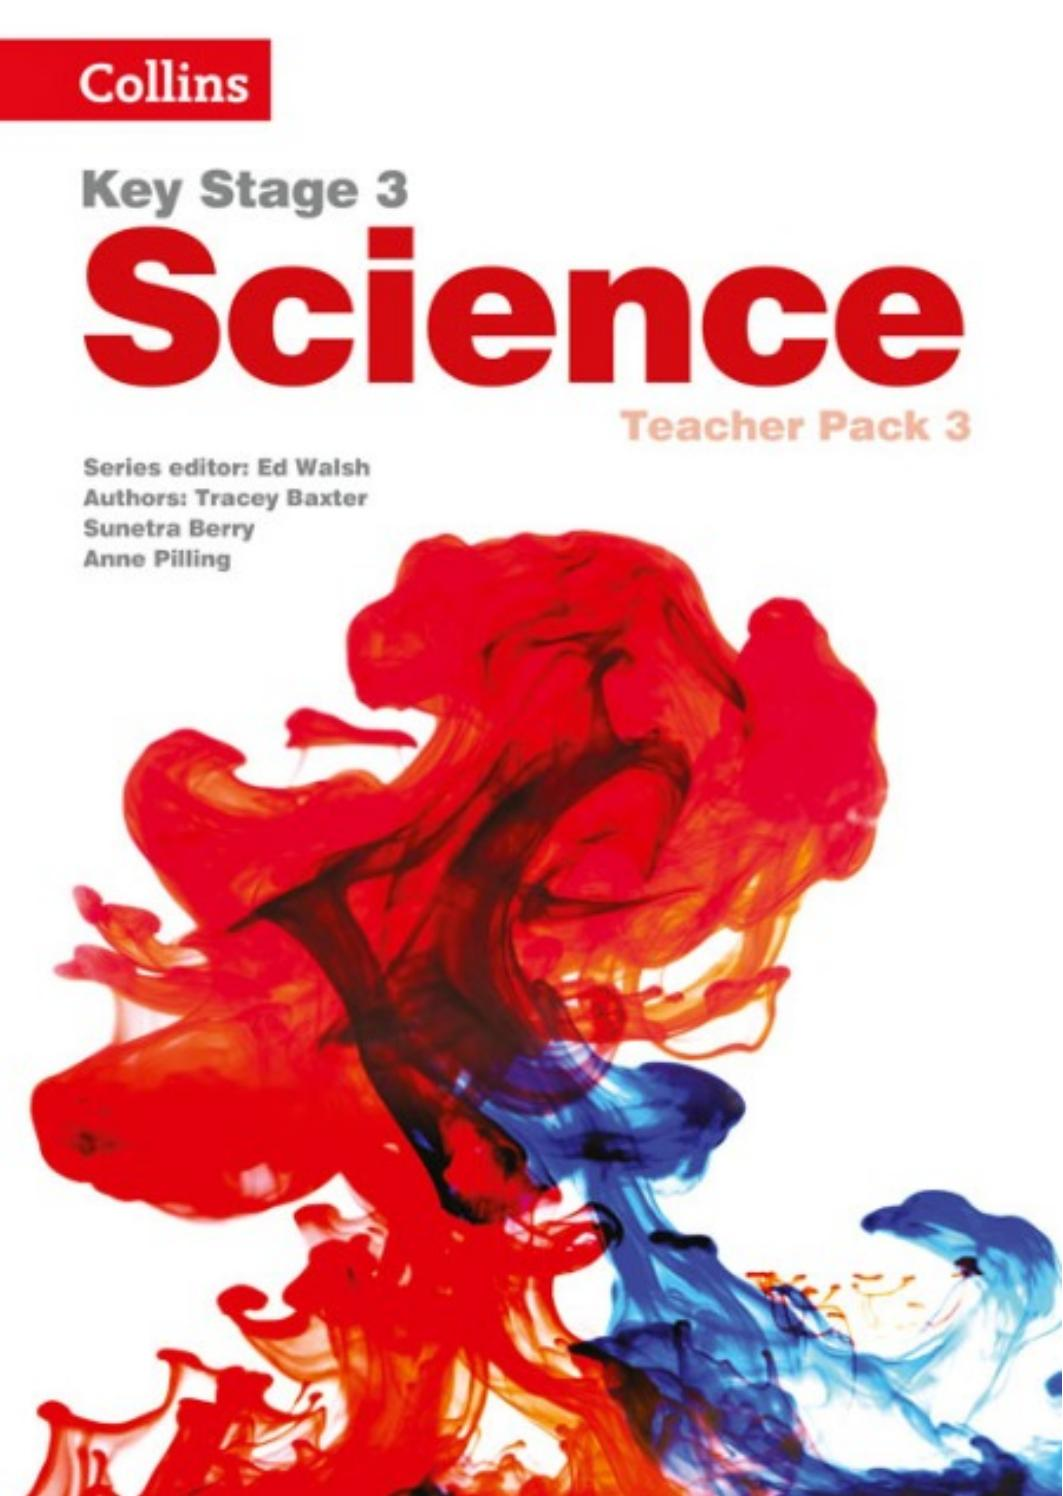 worksheet Key Stage 3 Science Worksheets Free key stage three science teacher pack 3 by collins issuu